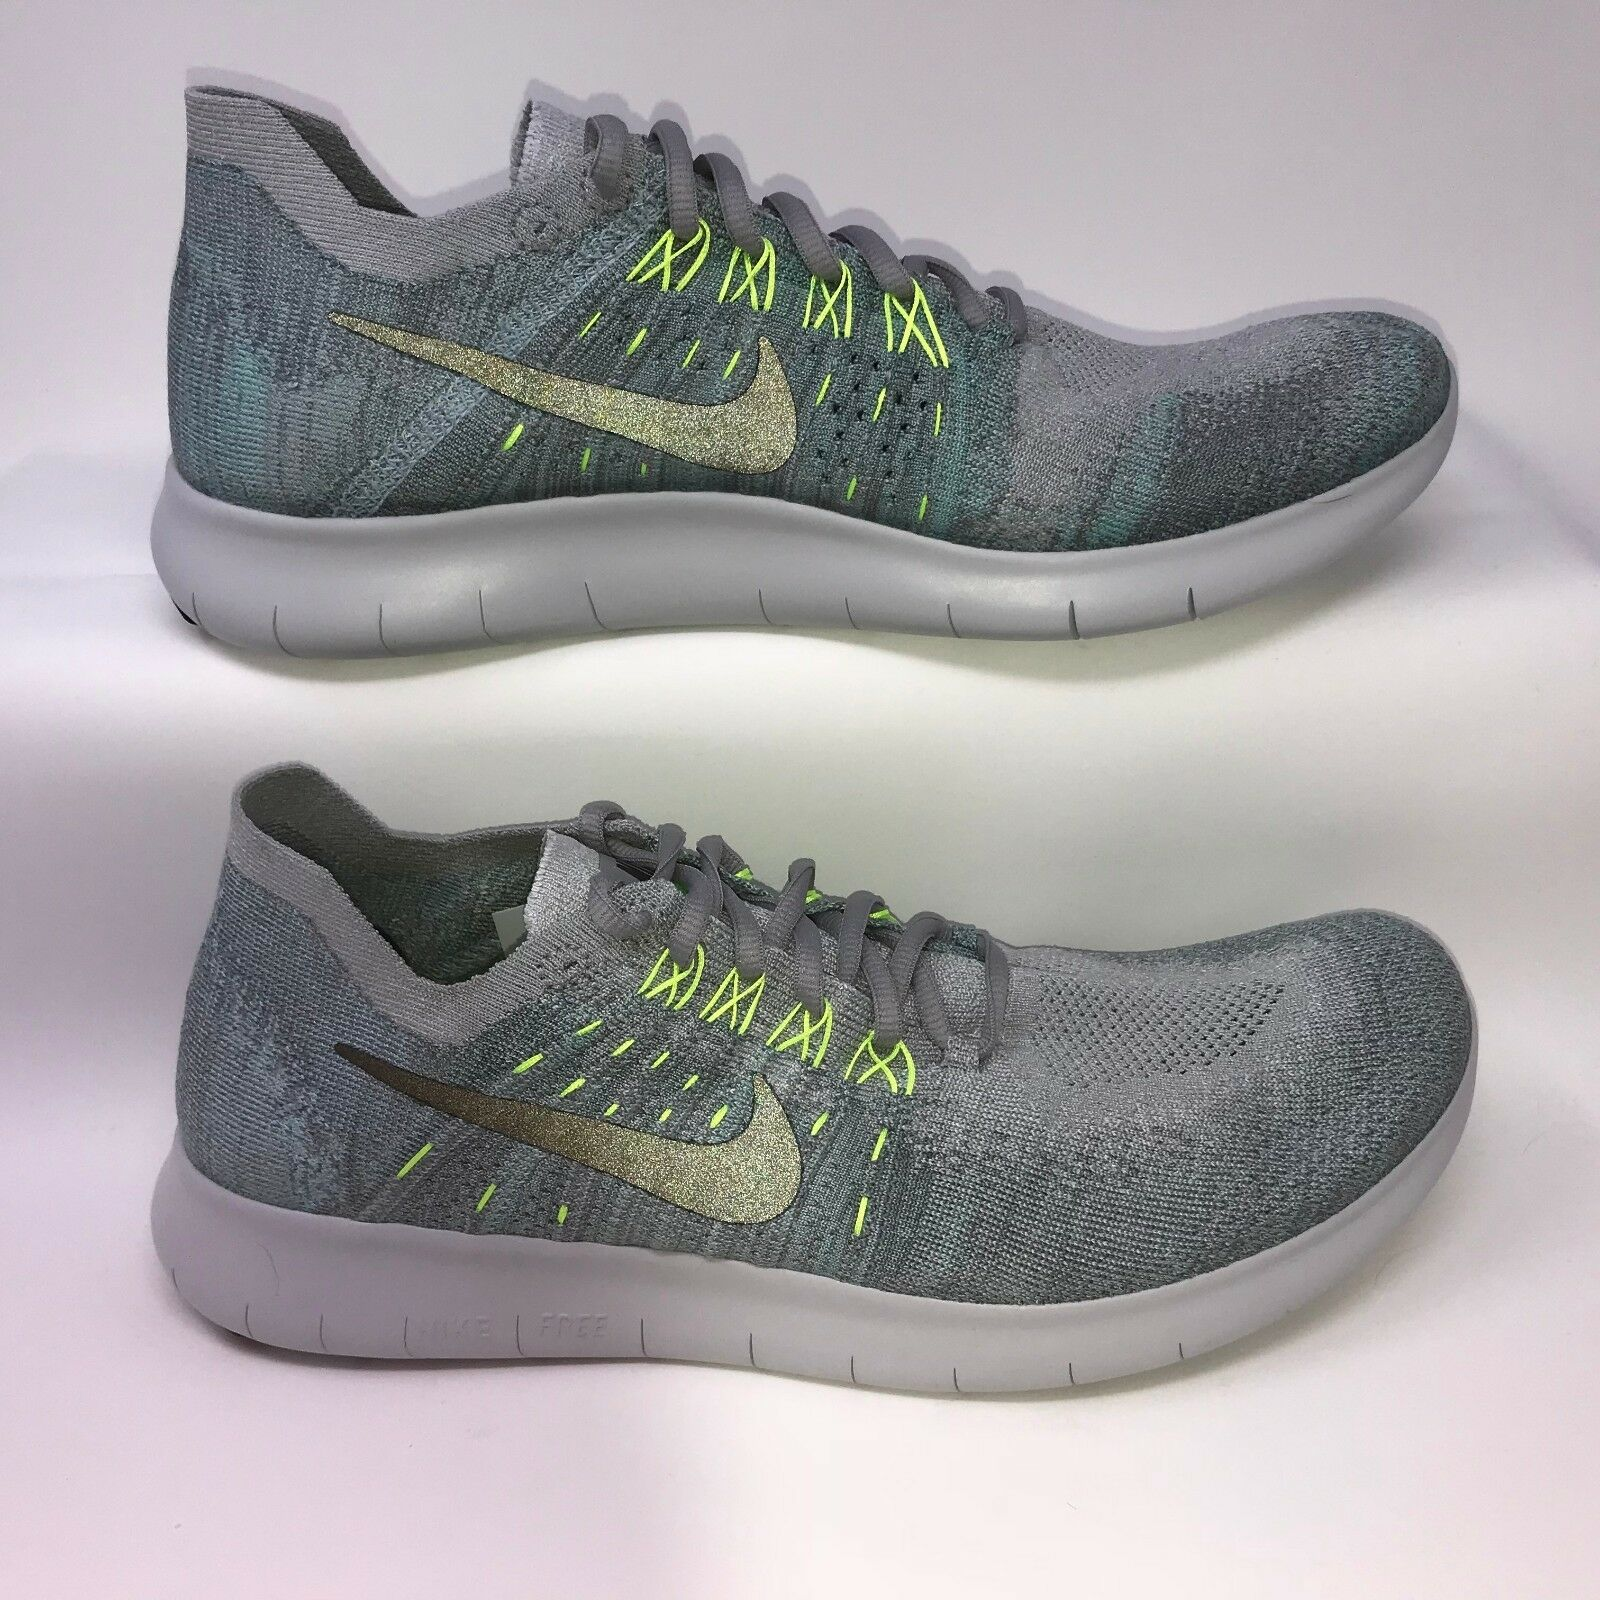 Nike Flyknit 880843-014 Mens Free RN Flyknit Nike Wolf Grey Turquoise Running Shoes Size 11 28538f